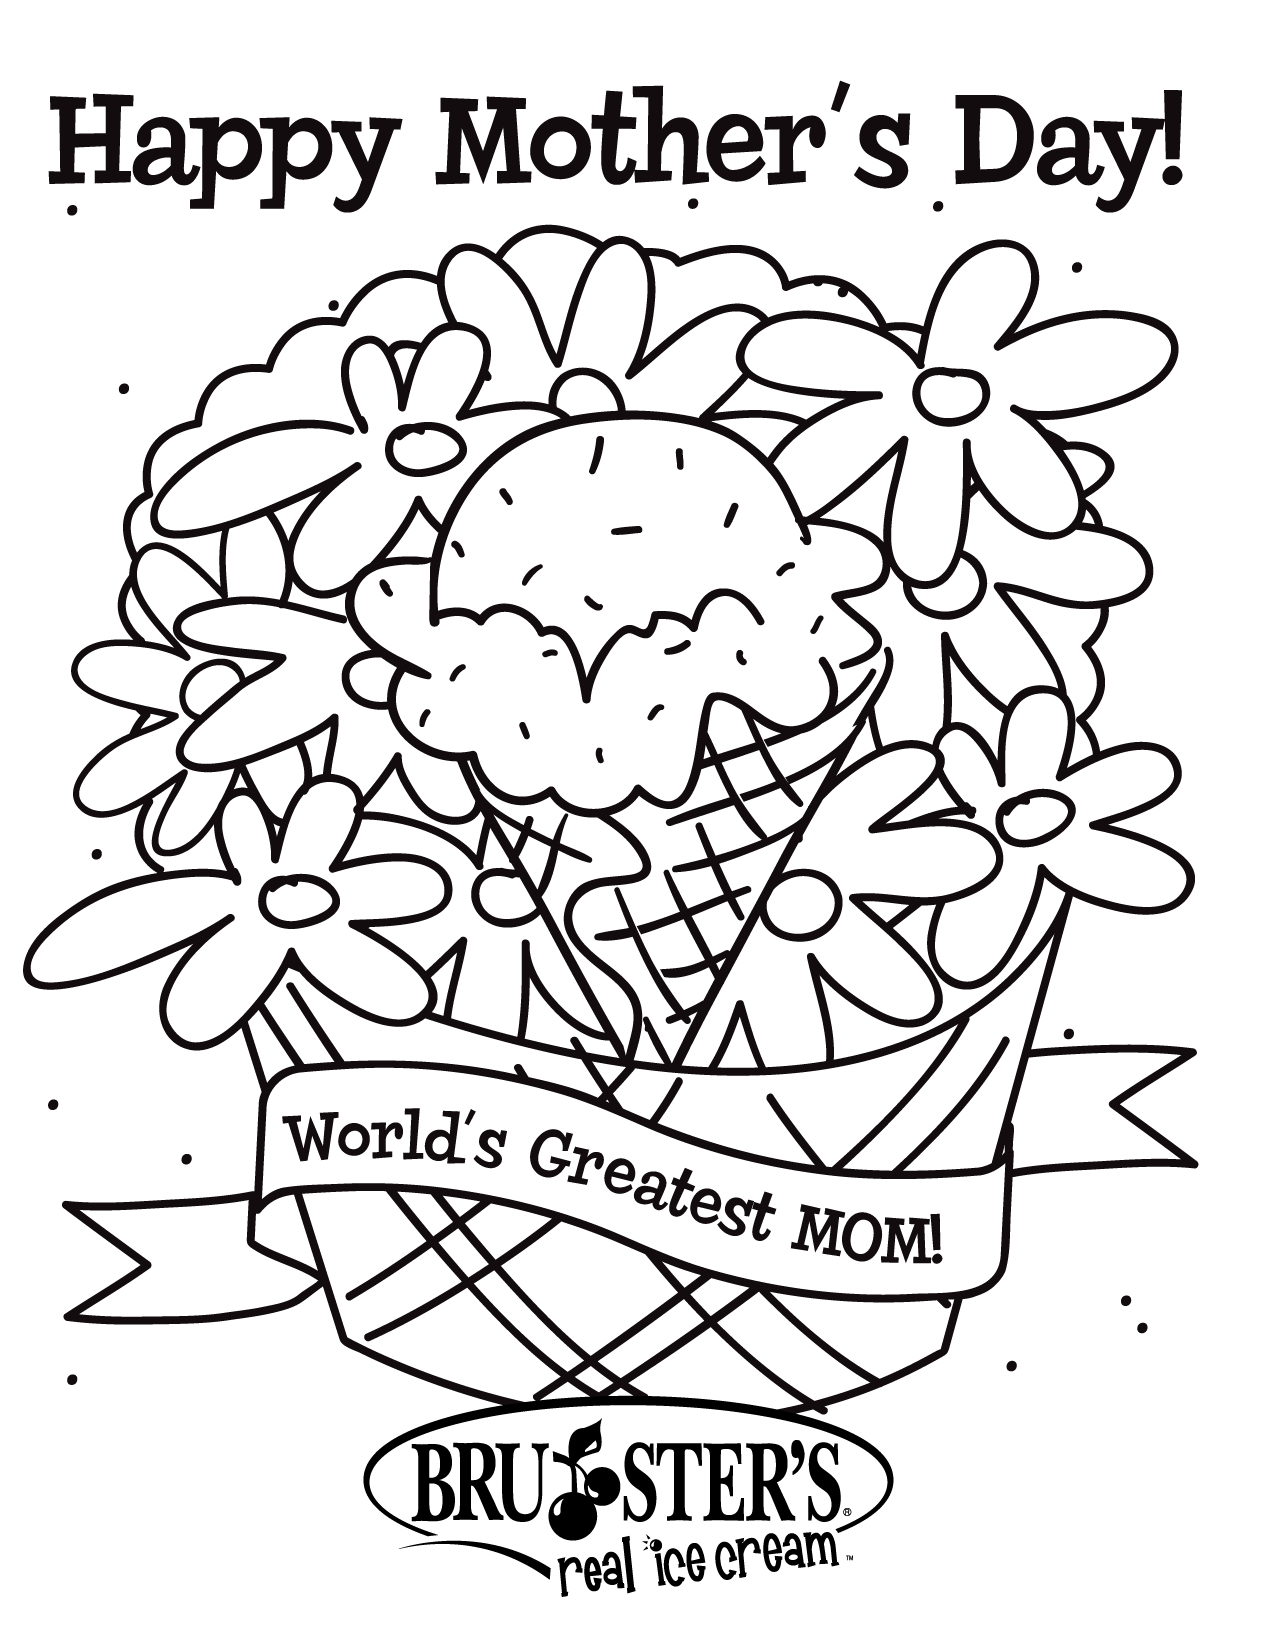 graphic relating to Mothers Day Coloring Pages Printable named Totally free Printable Moms Working day Coloring Webpages For Youngsters